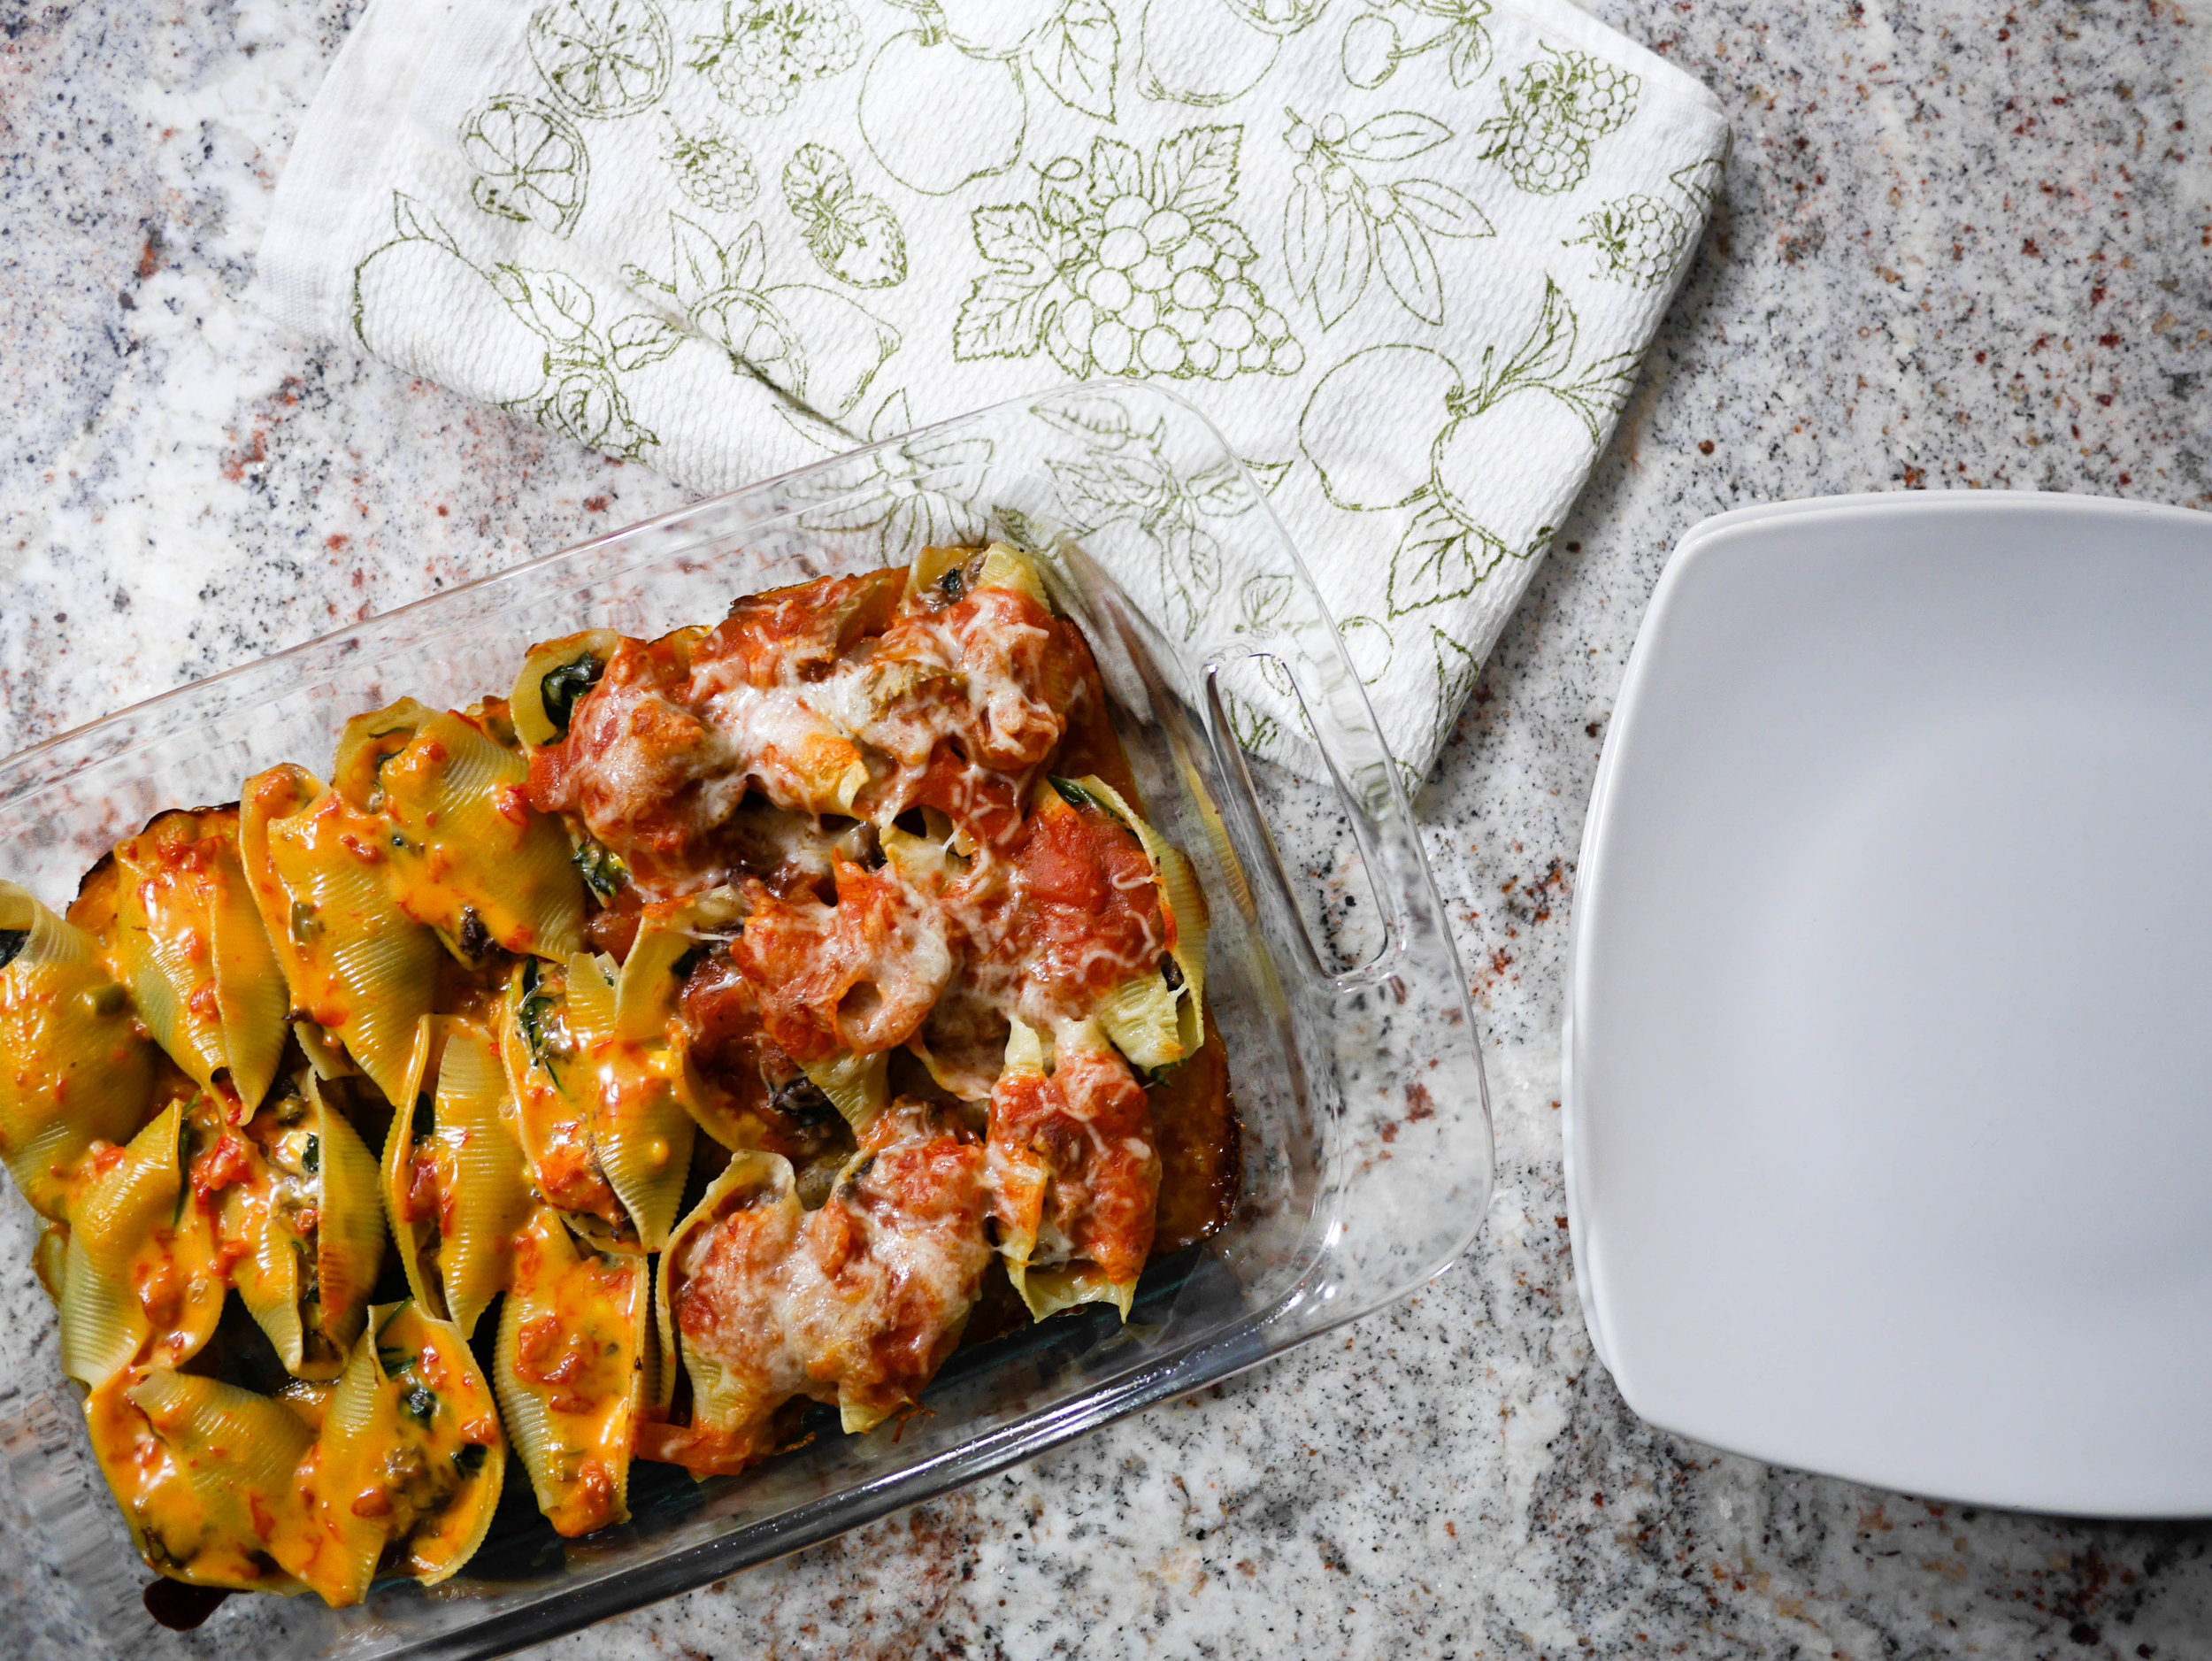 What do queso, sausage &peppers and a french dip sandwich all have in common? They can be repurposed to make one incredible stuffed shells meal.